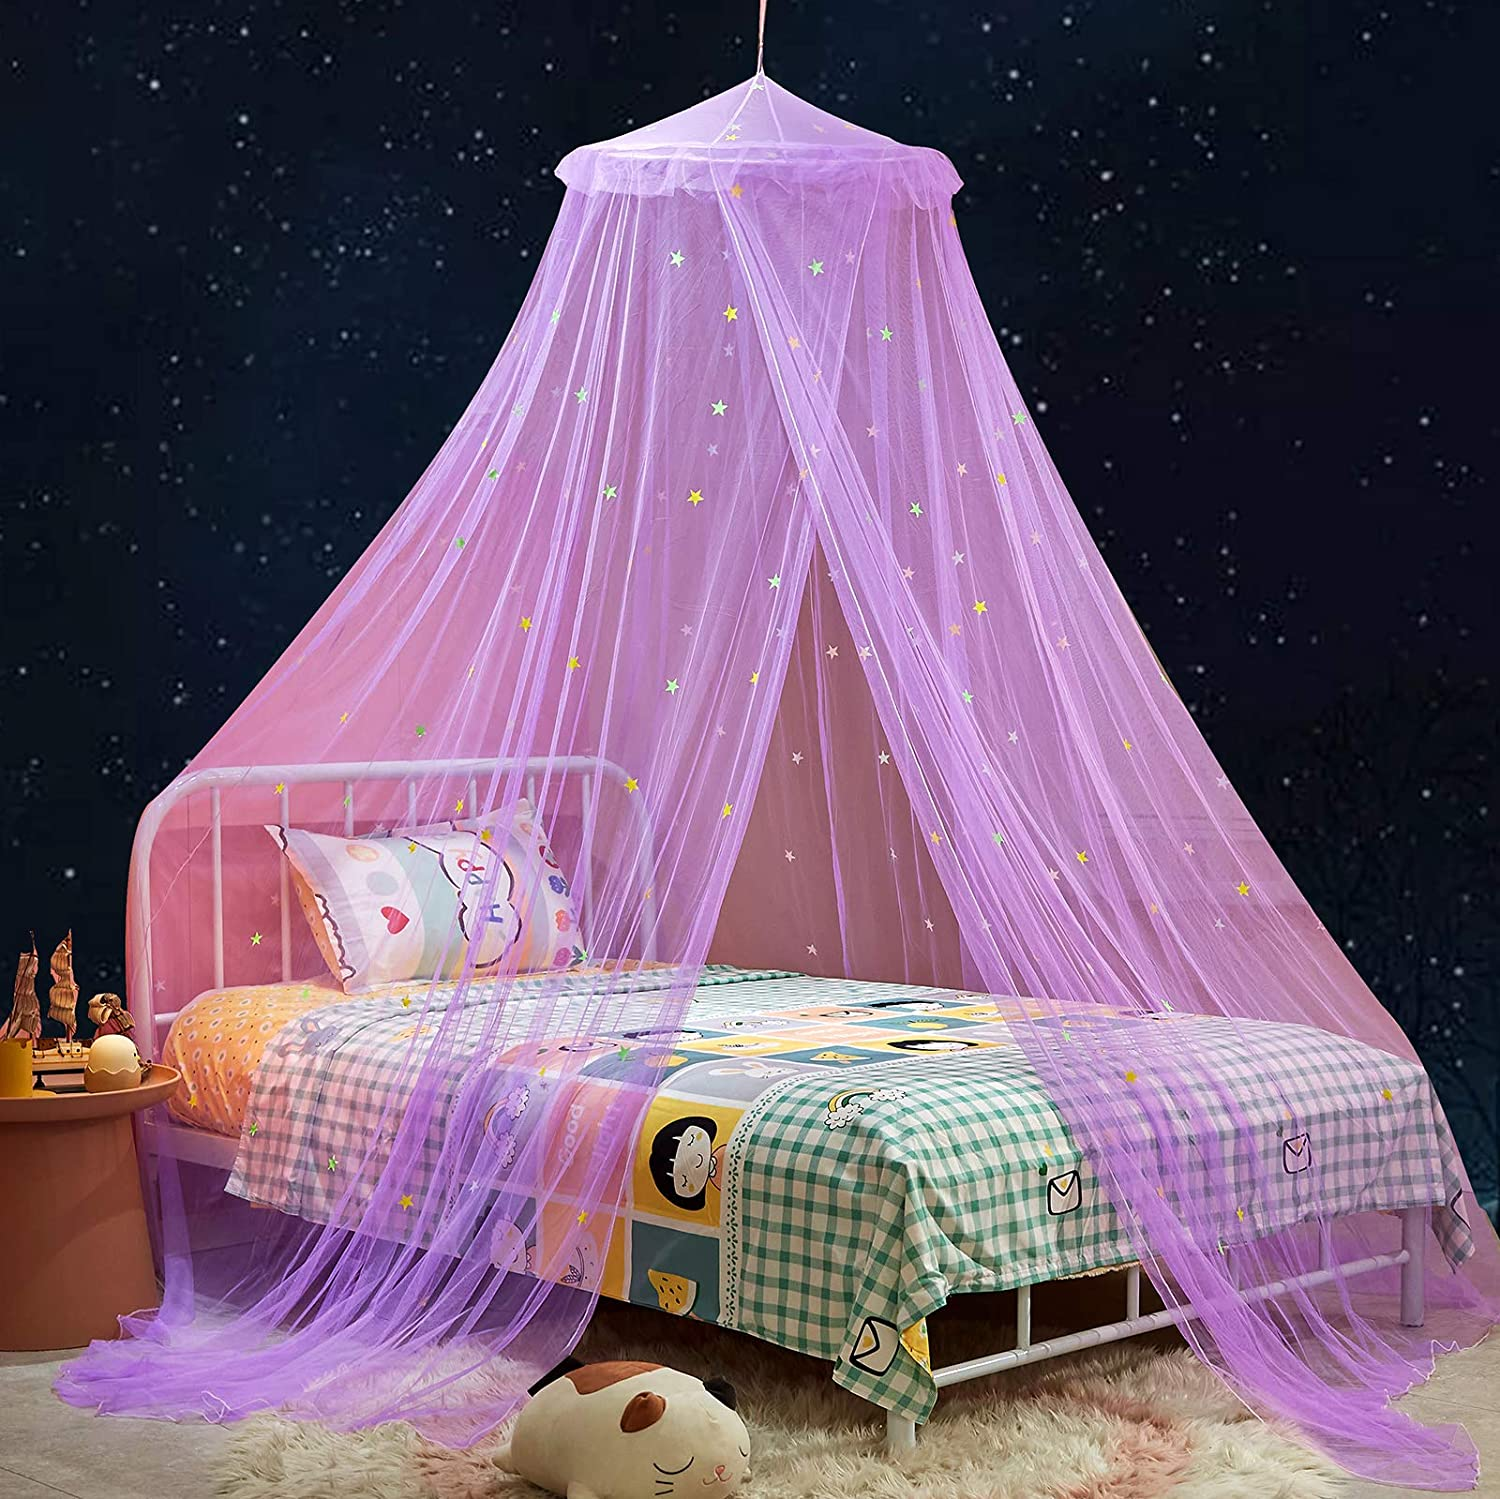 Mengersi Canopy Bed Curtains with Fluorescent Stars Glow for Girls Kids,Bed Canopies Drapes Mosquito Net for Baby Crib,Girls,Boys Or Twin Full Queen Size Bed (Purple)